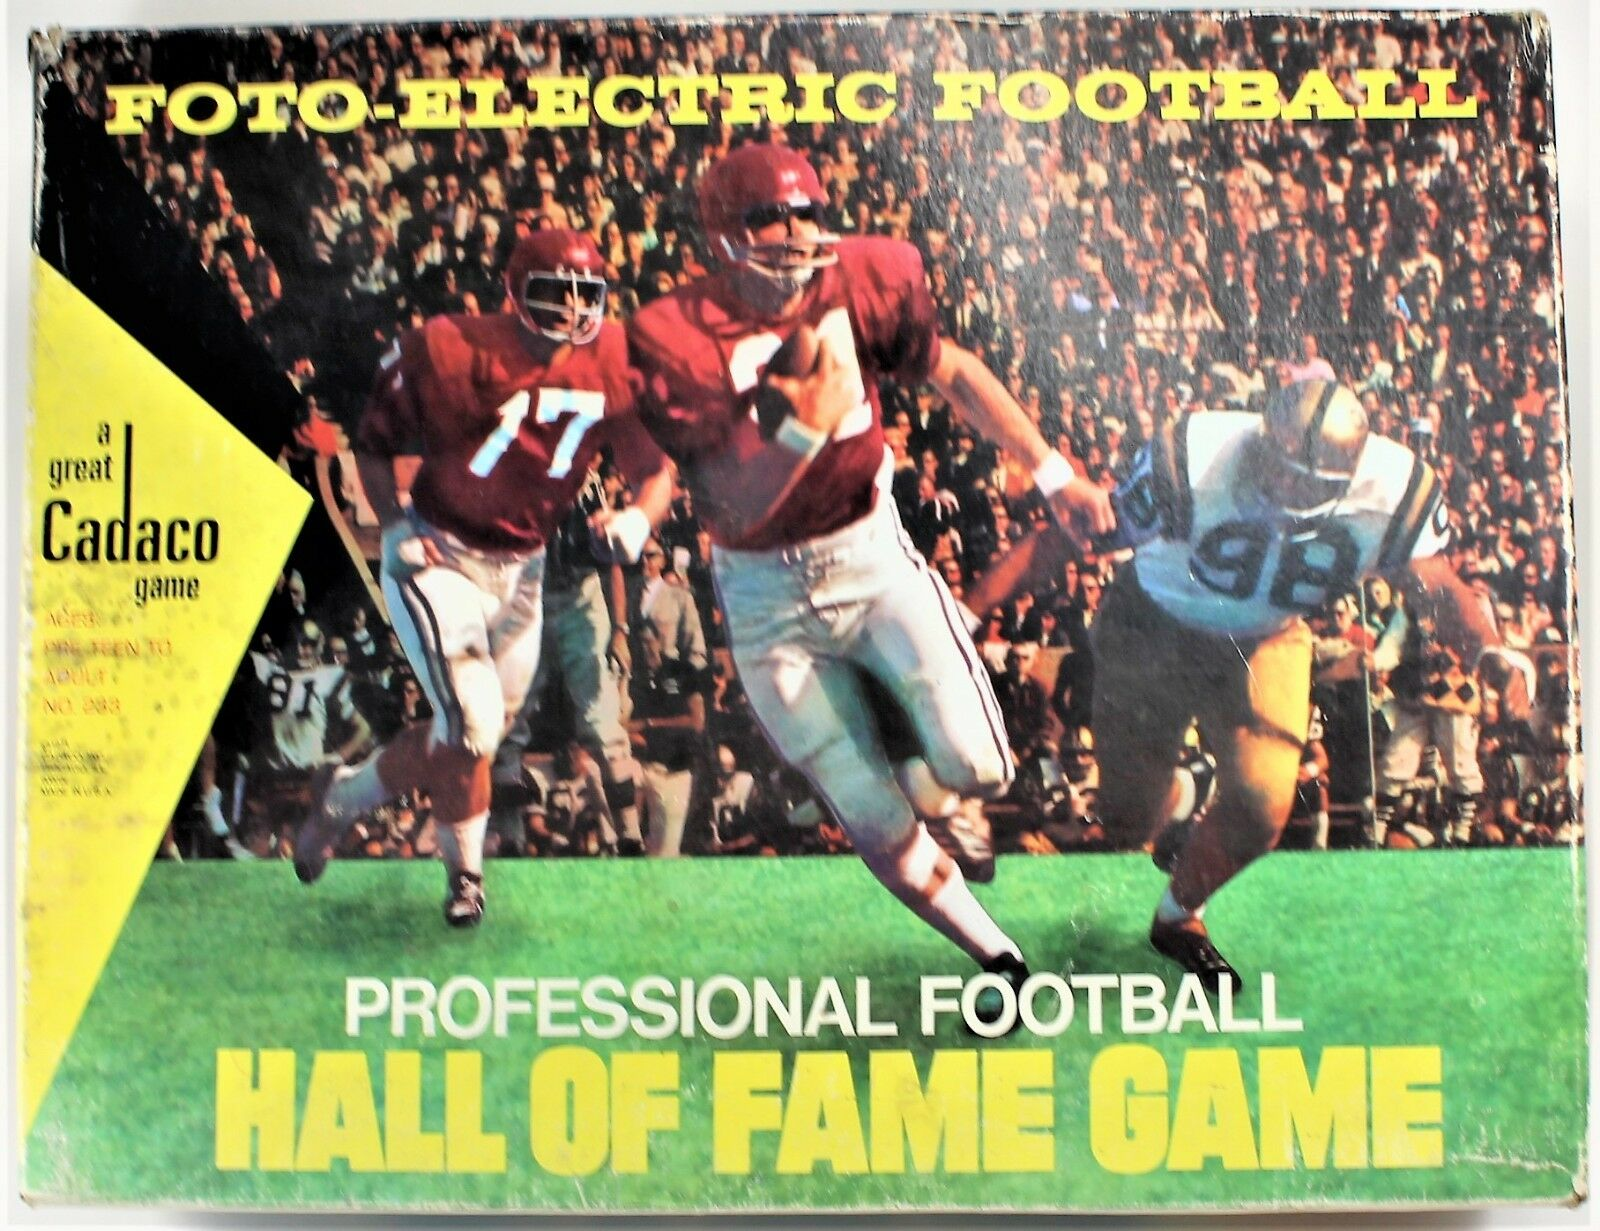 Foto-Electric Professional Football Hall of Fame Game Cadaco 1971